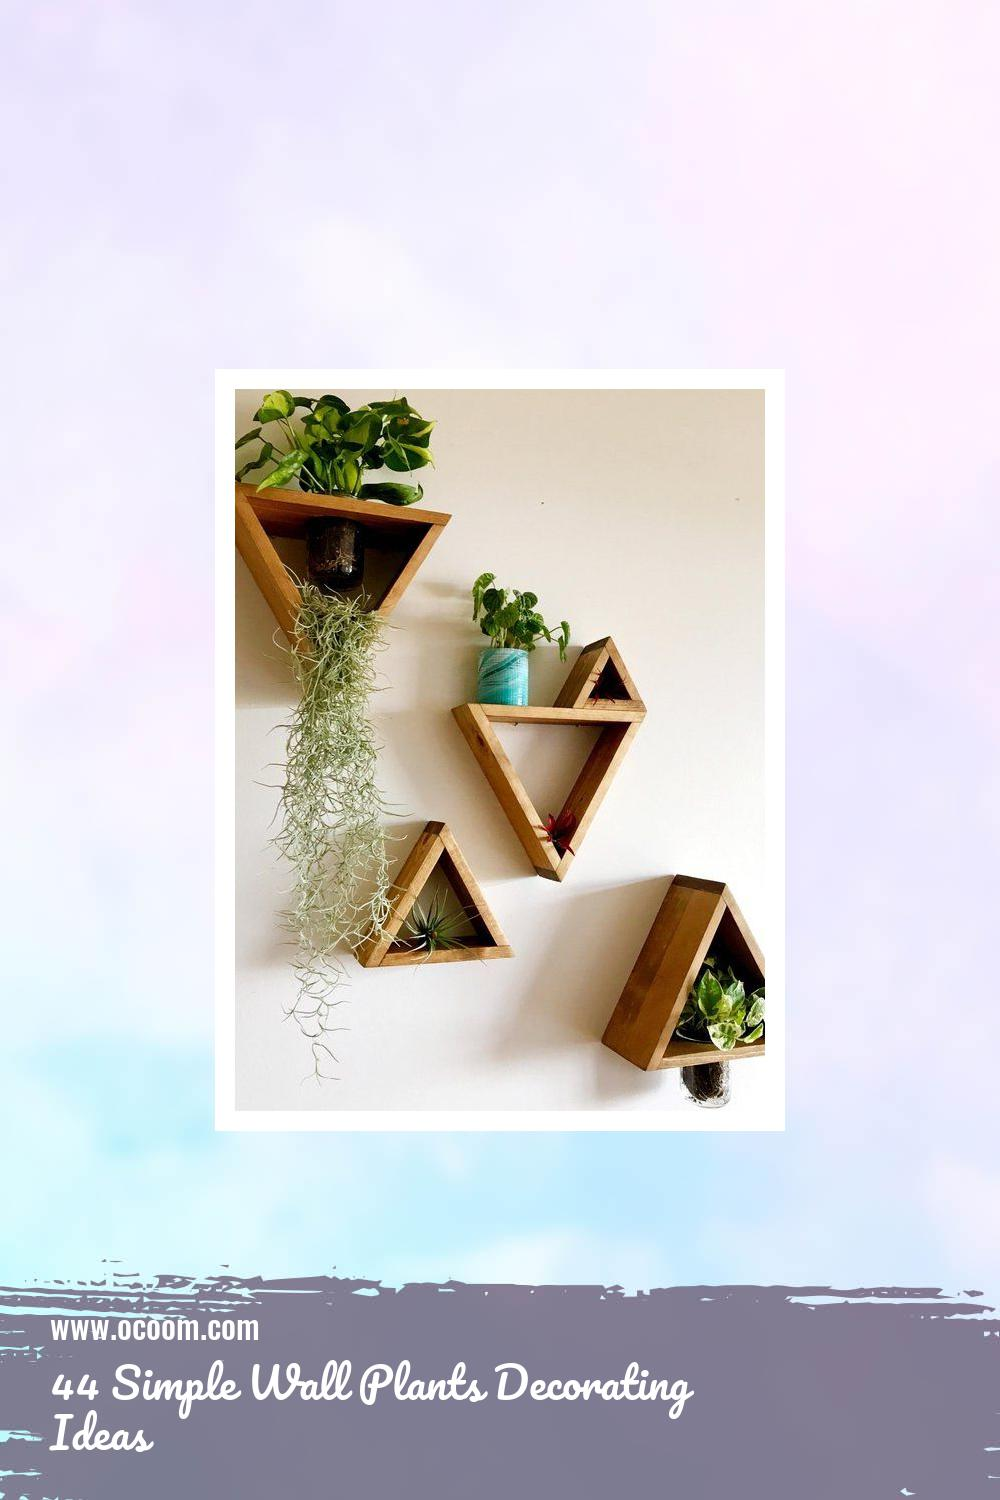 44 Simple Wall Plants Decorating Ideas 1